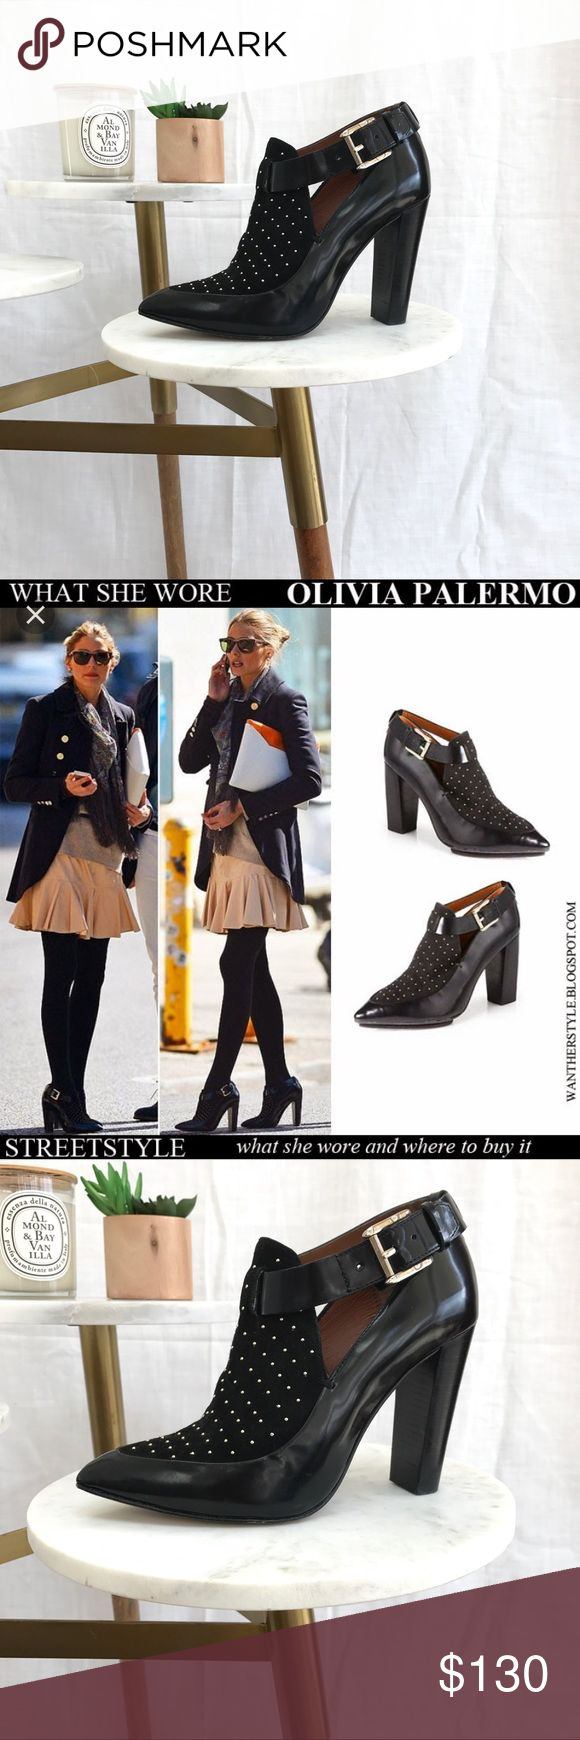 "Rebecca Minkoff Gio Studded Bootie Pump Excellent preowned condition - minimal scuffing on heel and wear on bottom soles. As seen on Olivia Palermo. 3.5"" stacked heel. Rebecca Minkoff Shoes Ankle Boots & Booties"